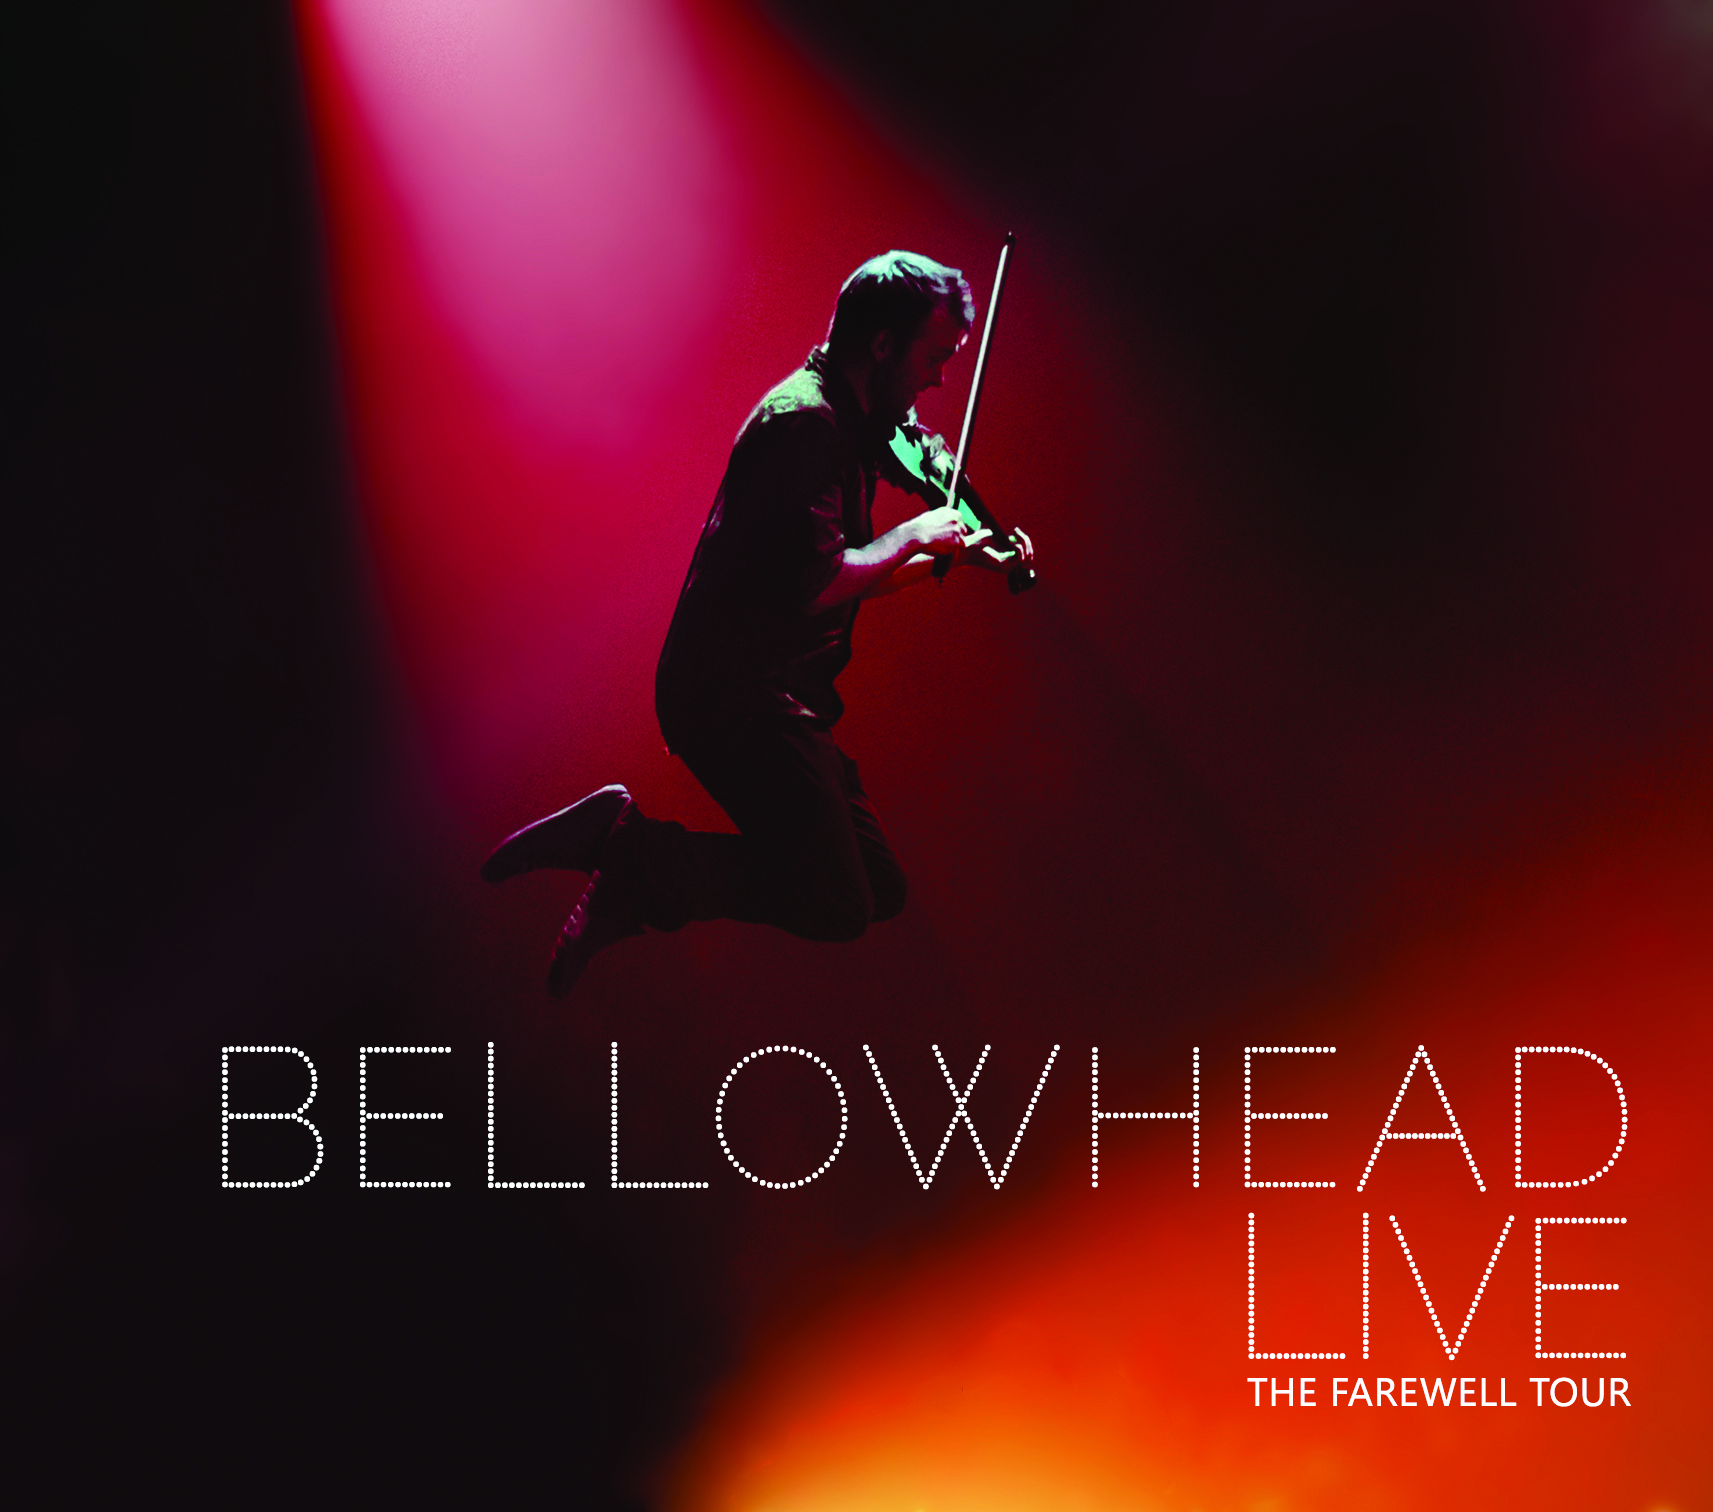 Bellowhead - Live The Farewell Tour Cover